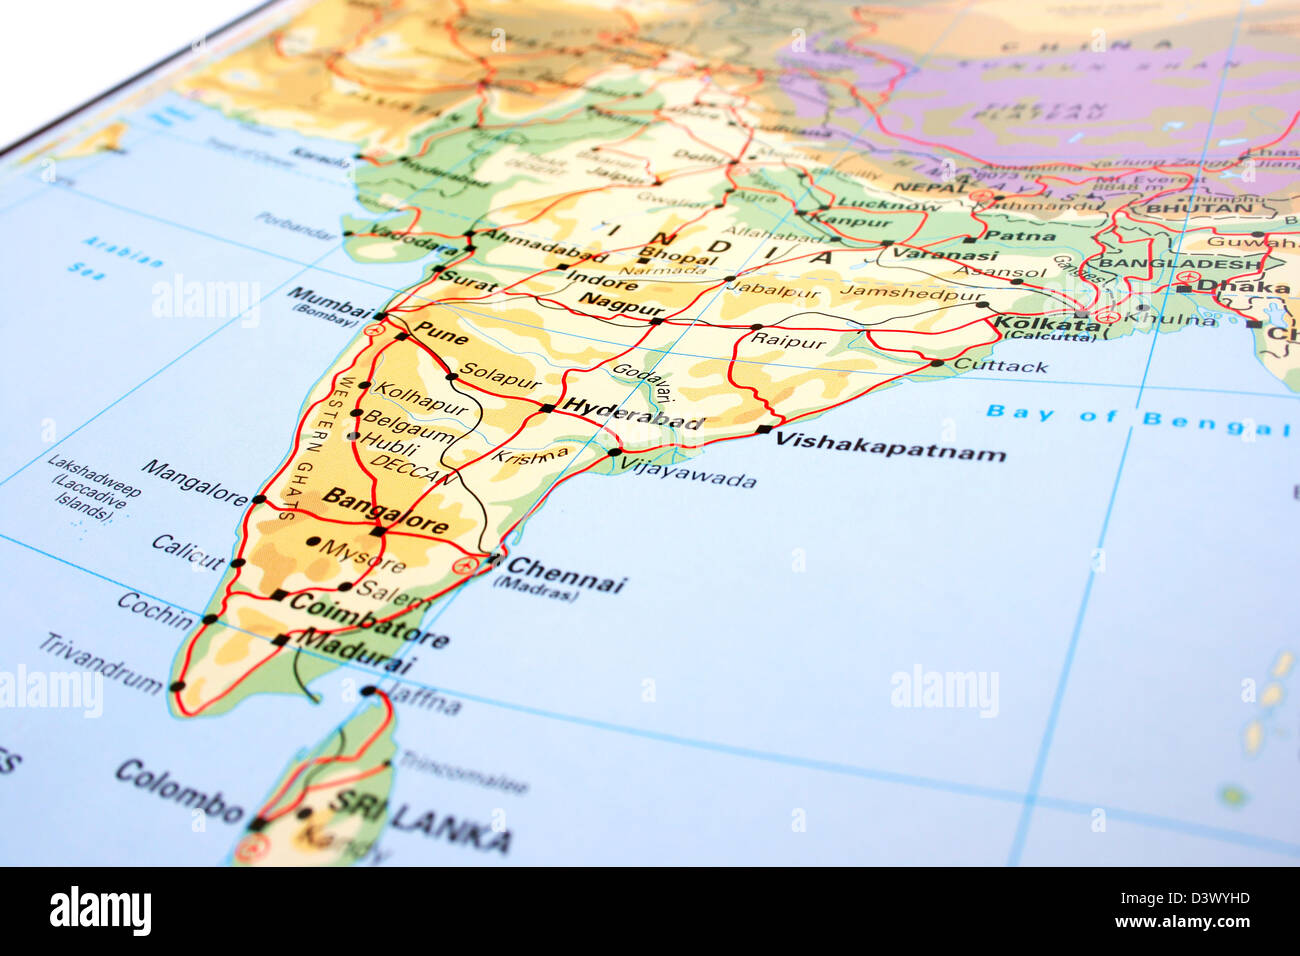 India Map With Mountains And Rivers Stock Photo 54045529 Alamy